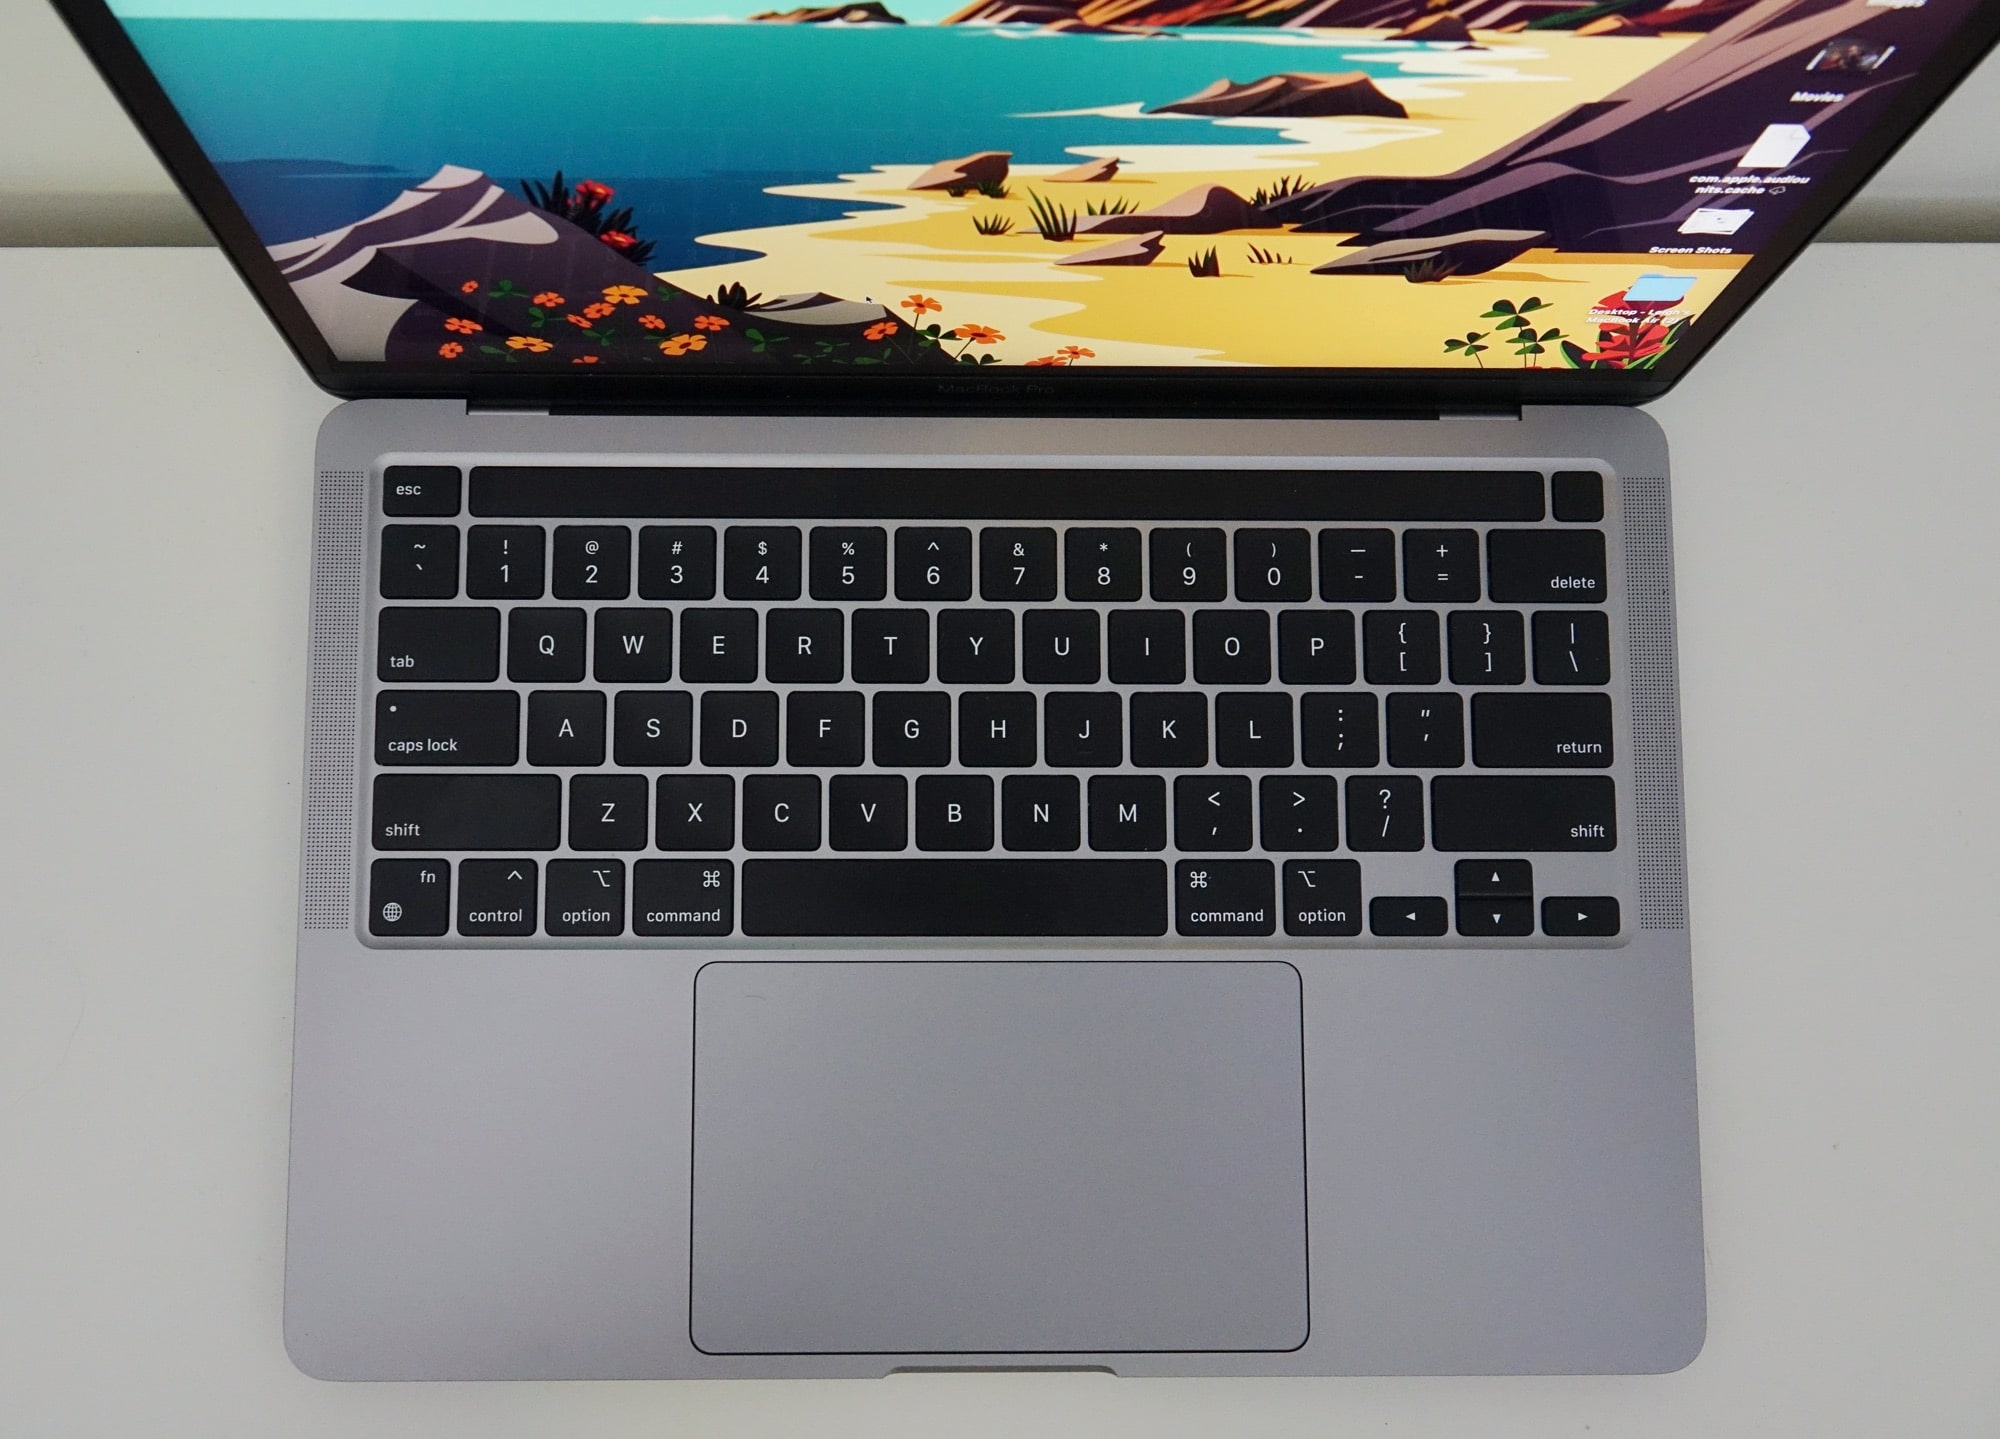 Looking down on the 13 inch MacBook Pro